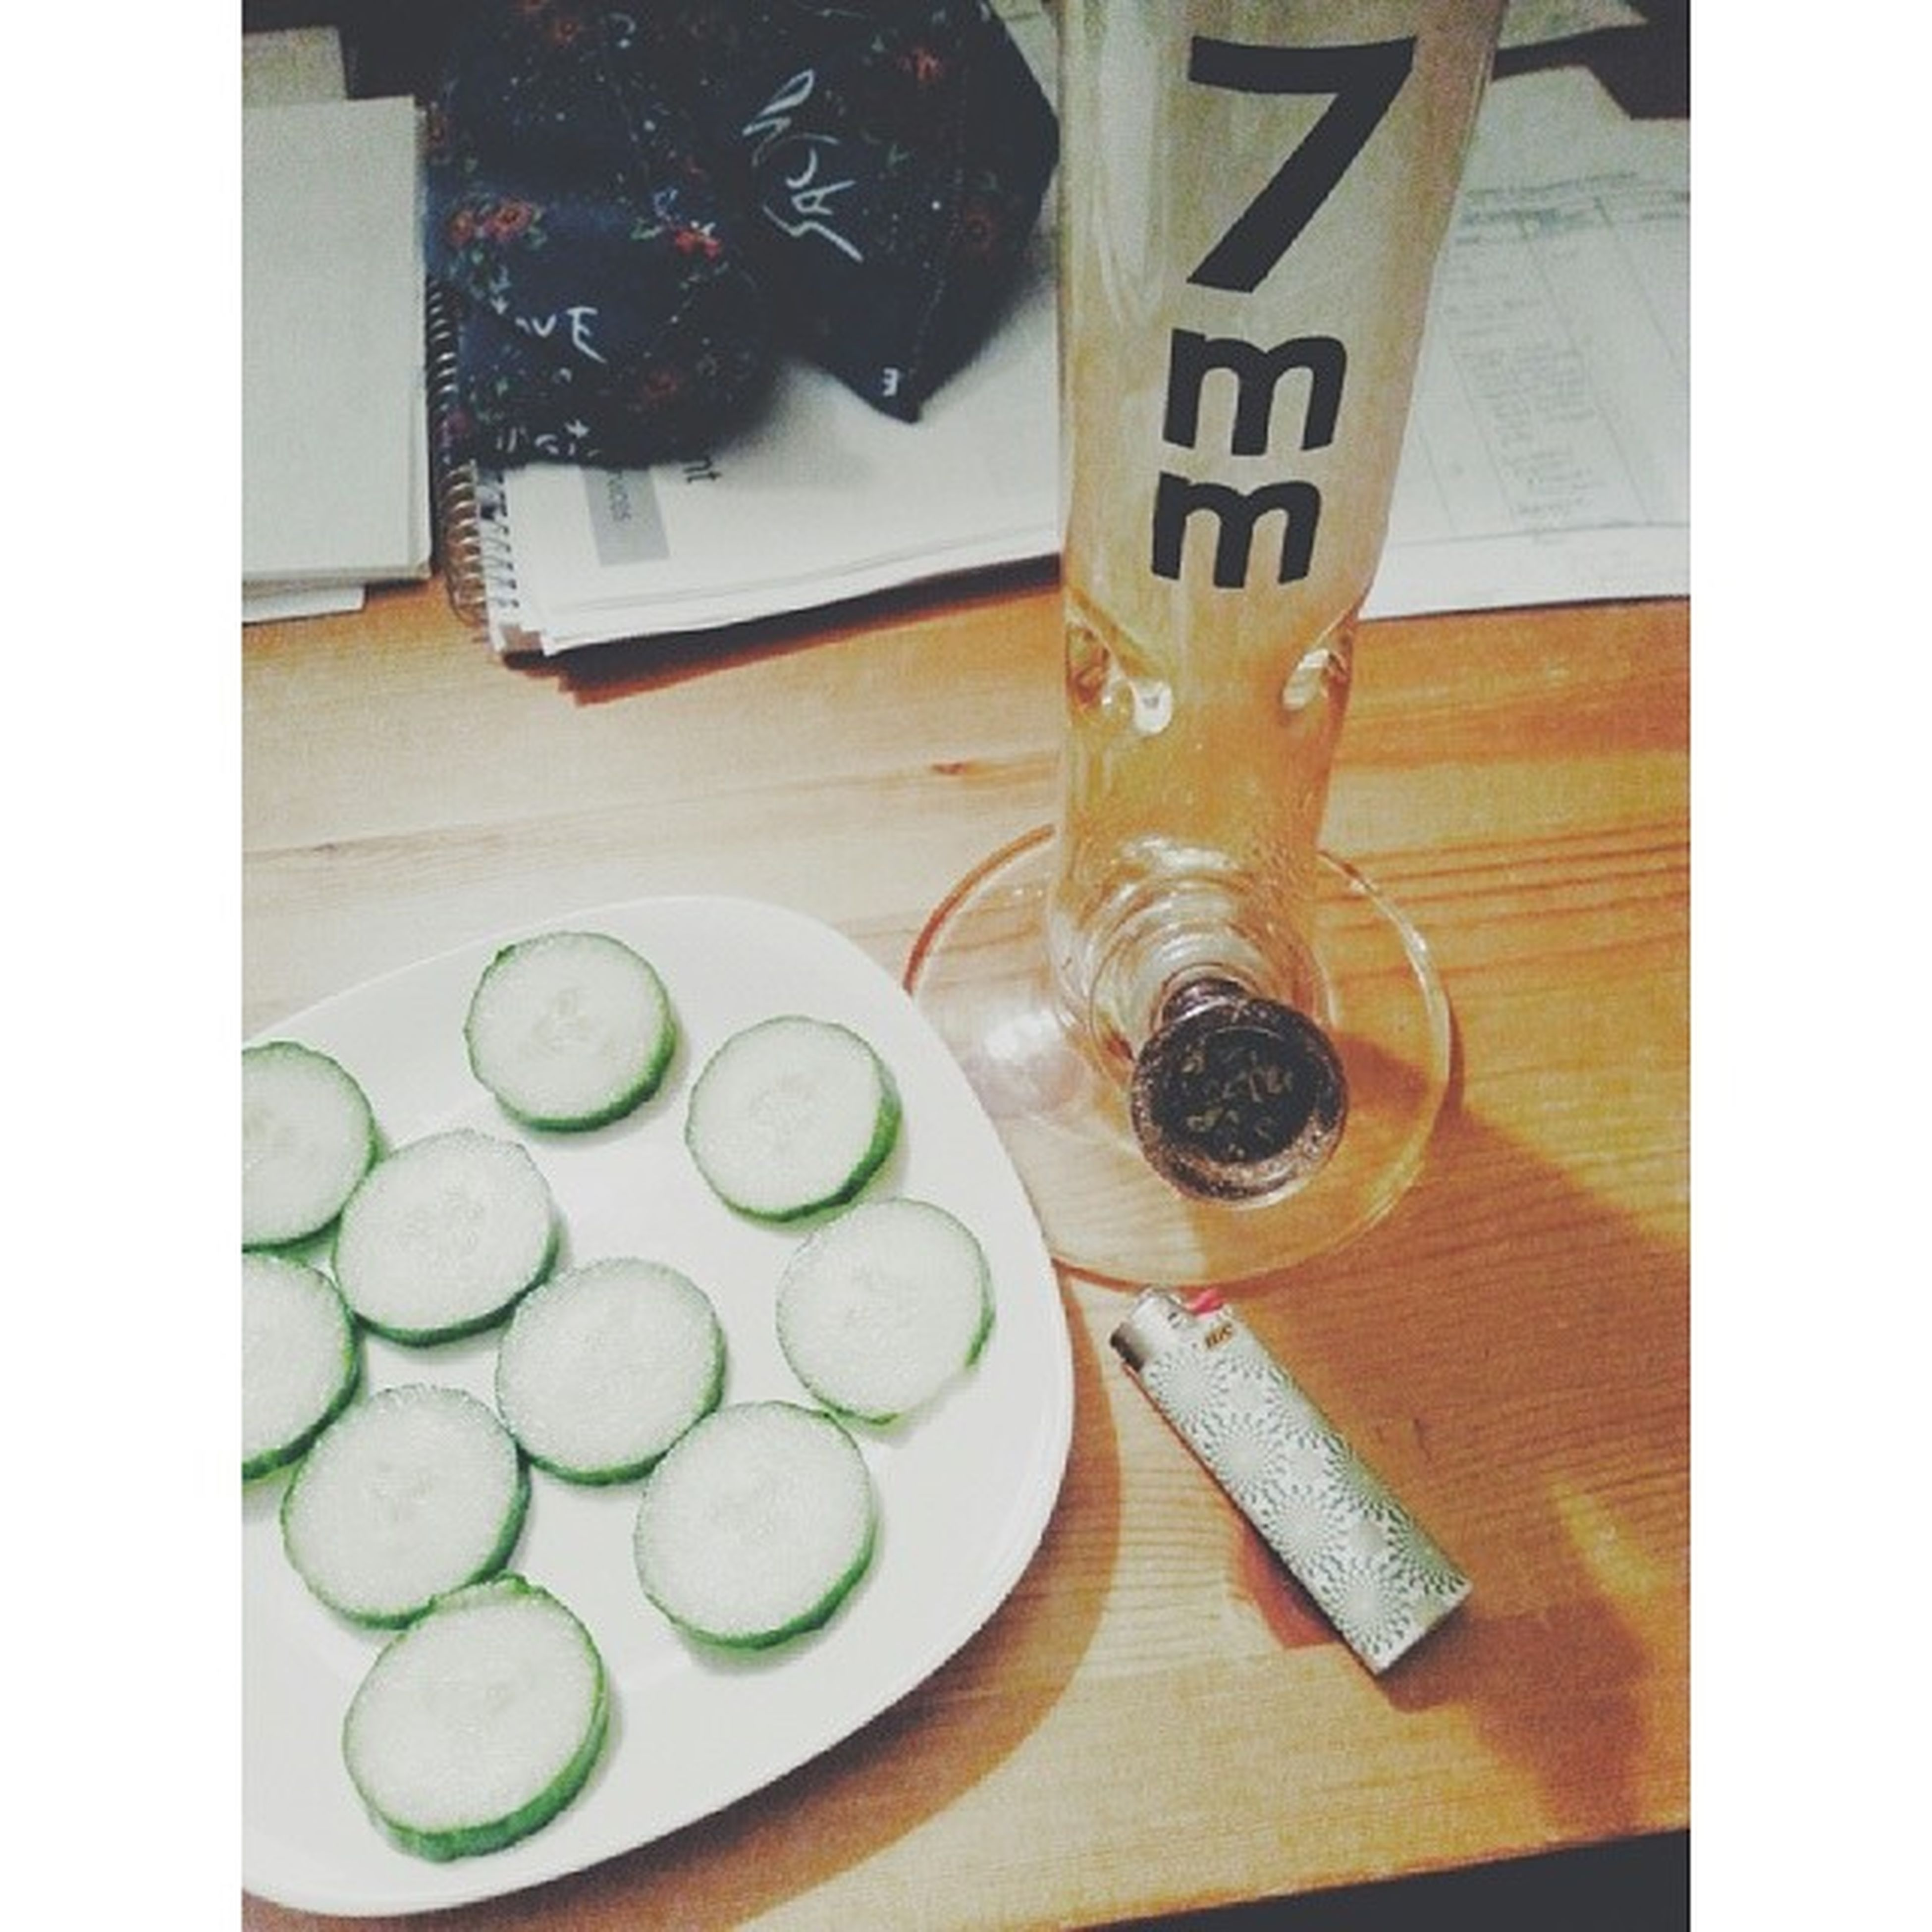 These are a few of my favourite things Cucumbers Bongs Gangagods Kief goodnight